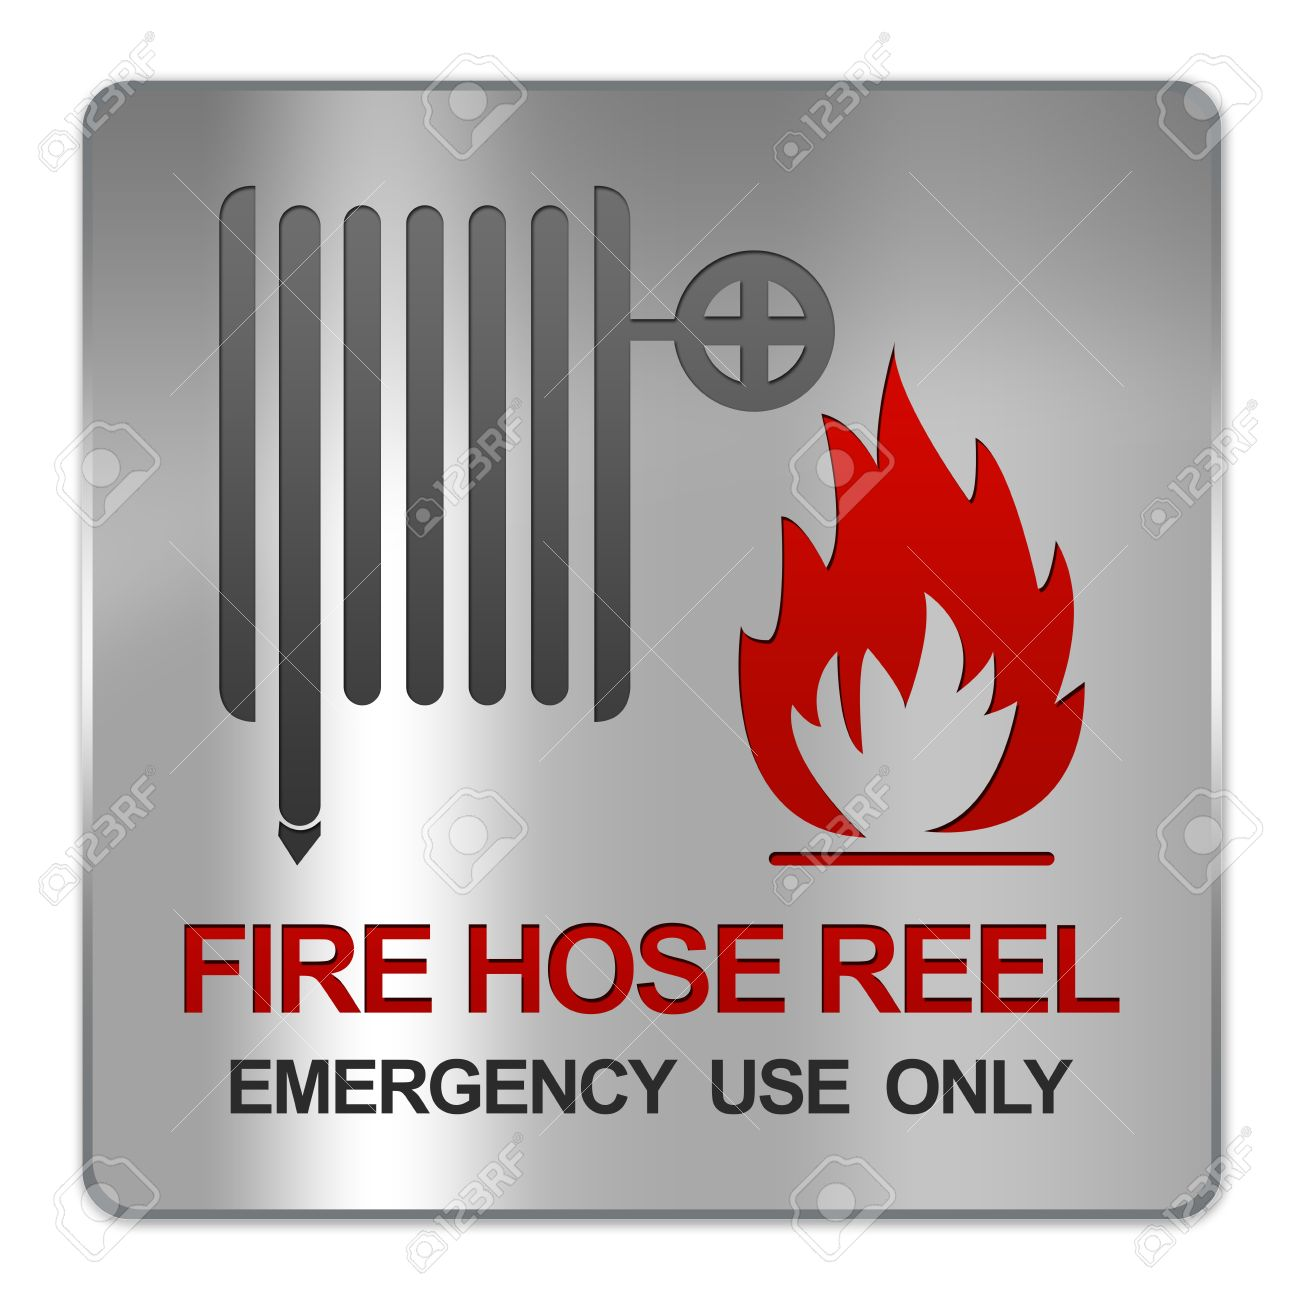 American Fire Hose And Cabinet Square Silver Metallic Plate For Fire Hose Reel Emergency Use